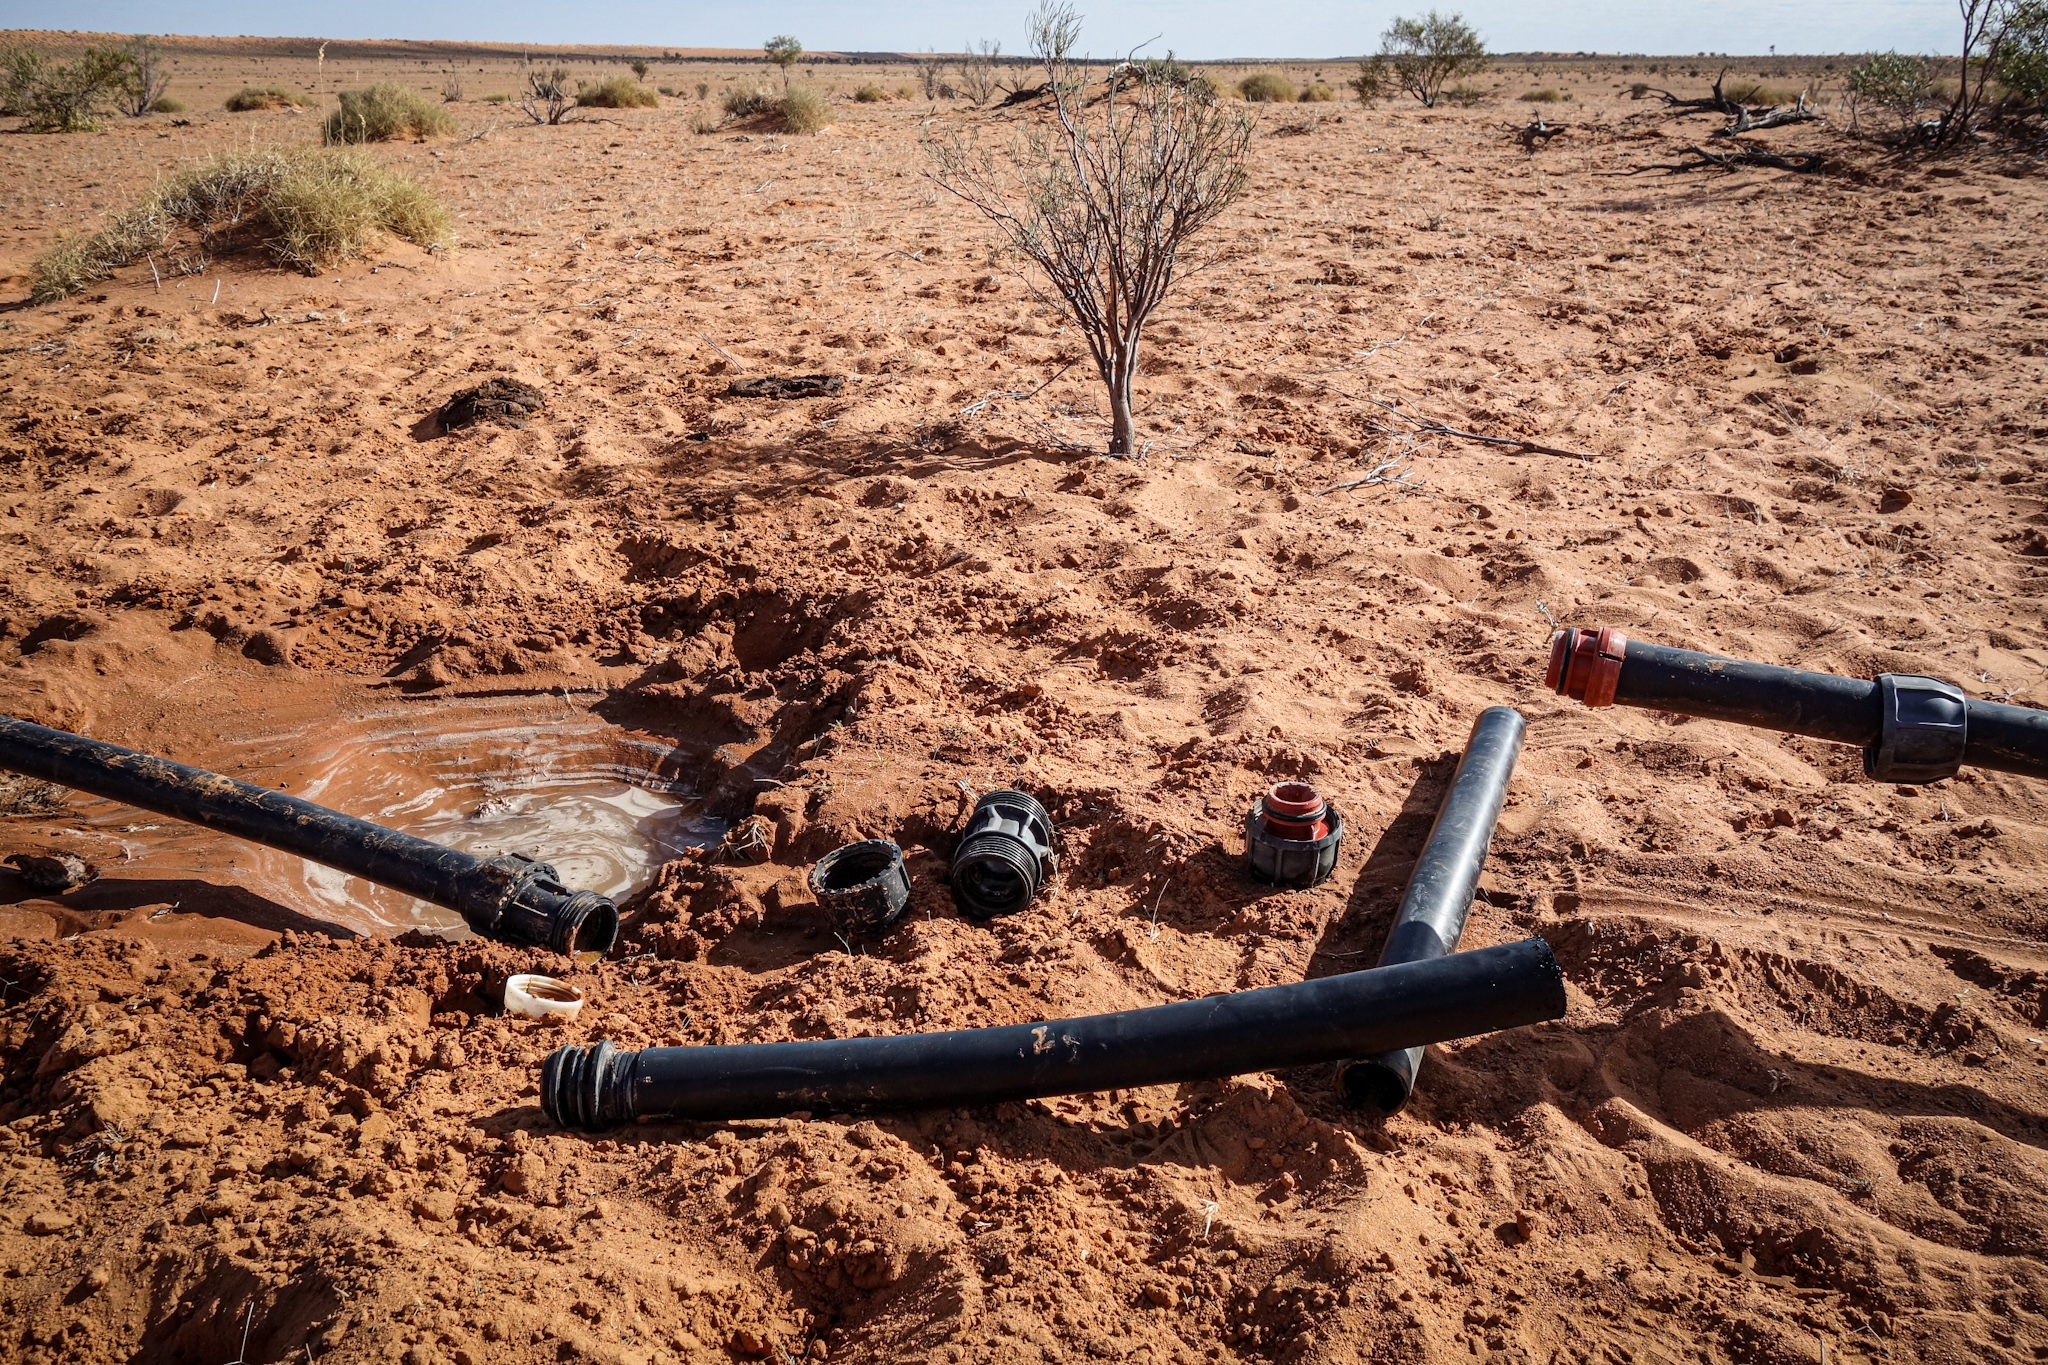 Broken waterpipe in the desert …